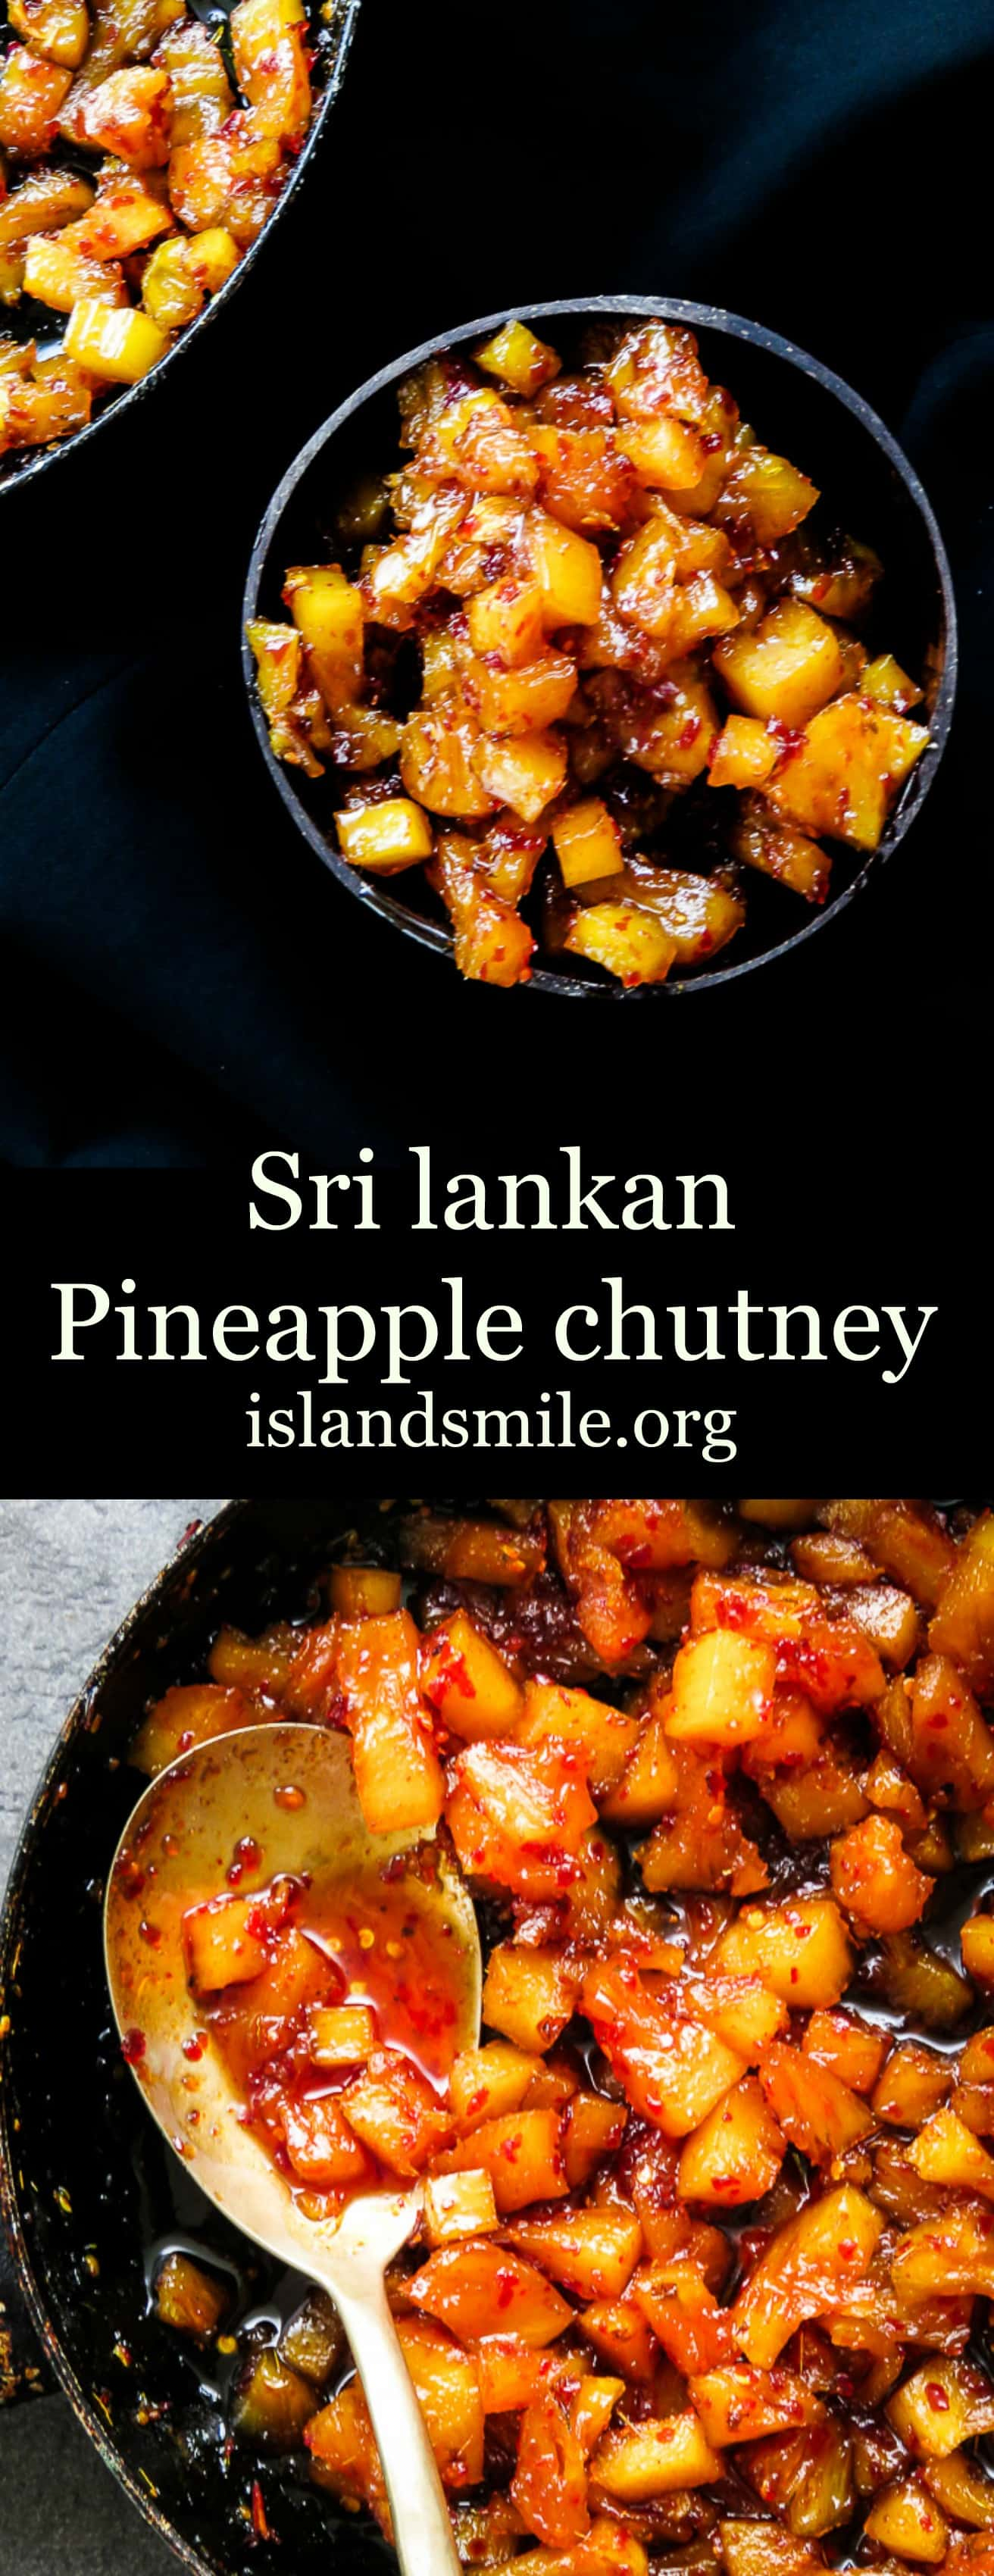 A sweet and spicy pineapple chutney. having a bottle of homemade pineapple chutney on the table with your rice and curry makes meal times easy with fussy kids and adults as well.